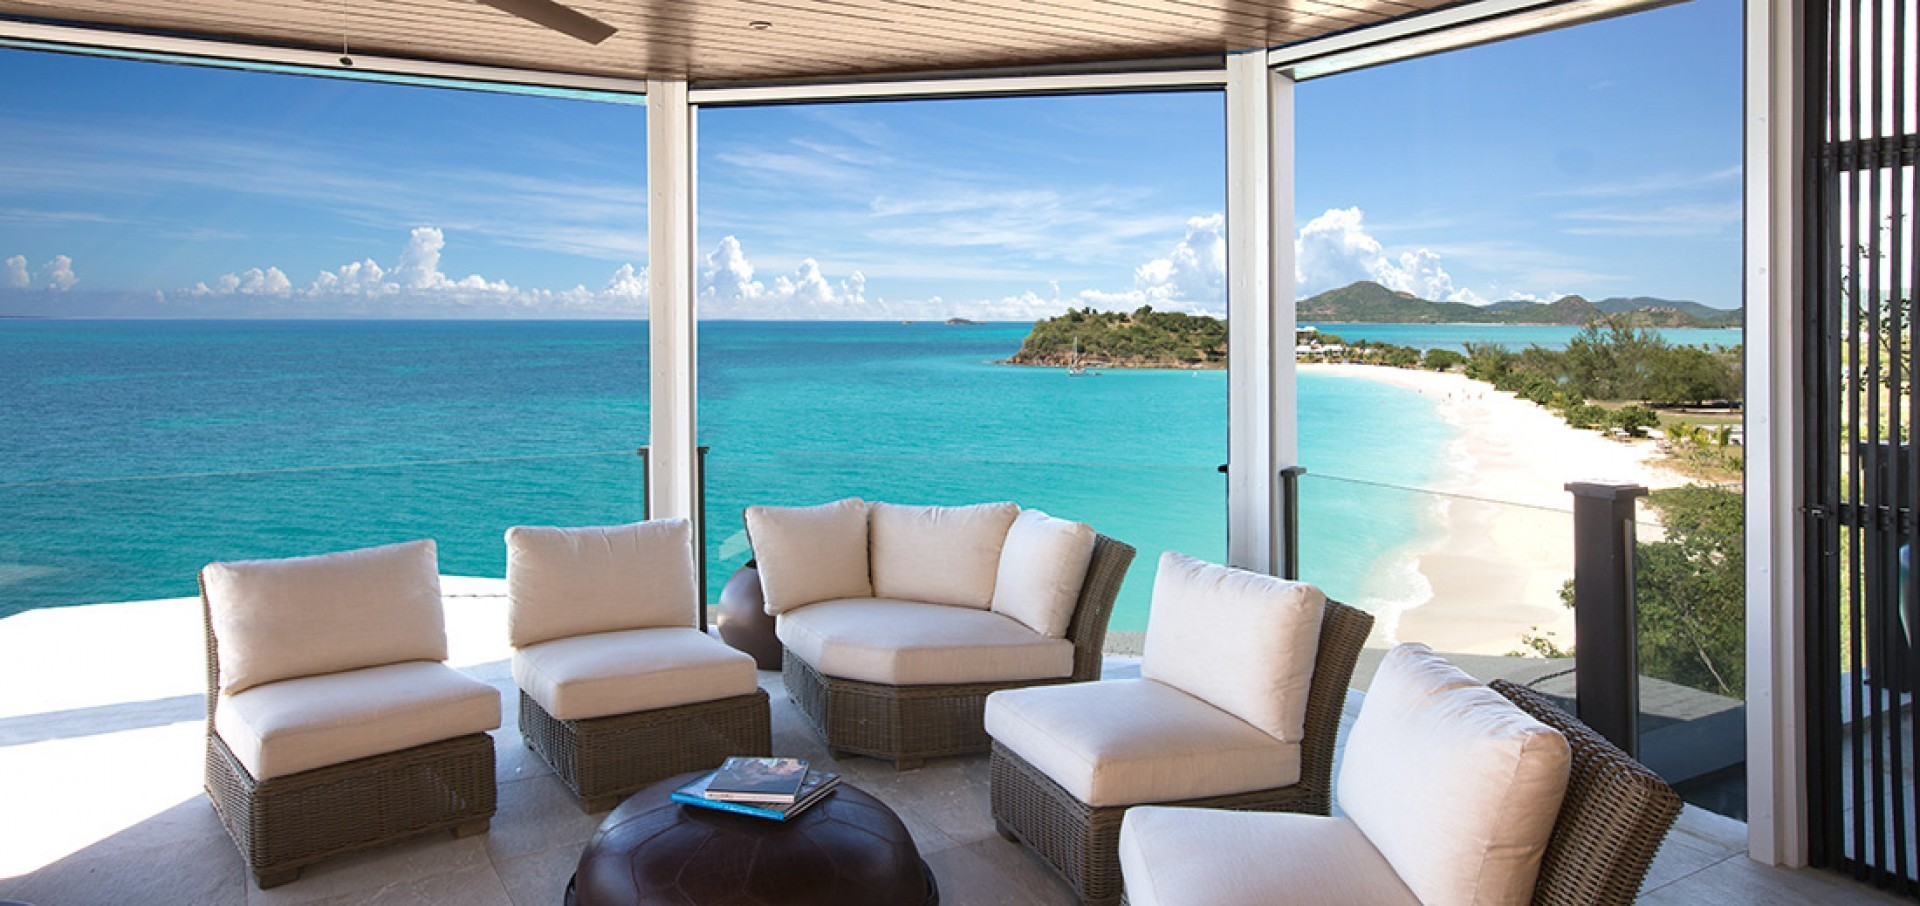 Antigua Villas and vacation rentals- Where to vacation on Antigua